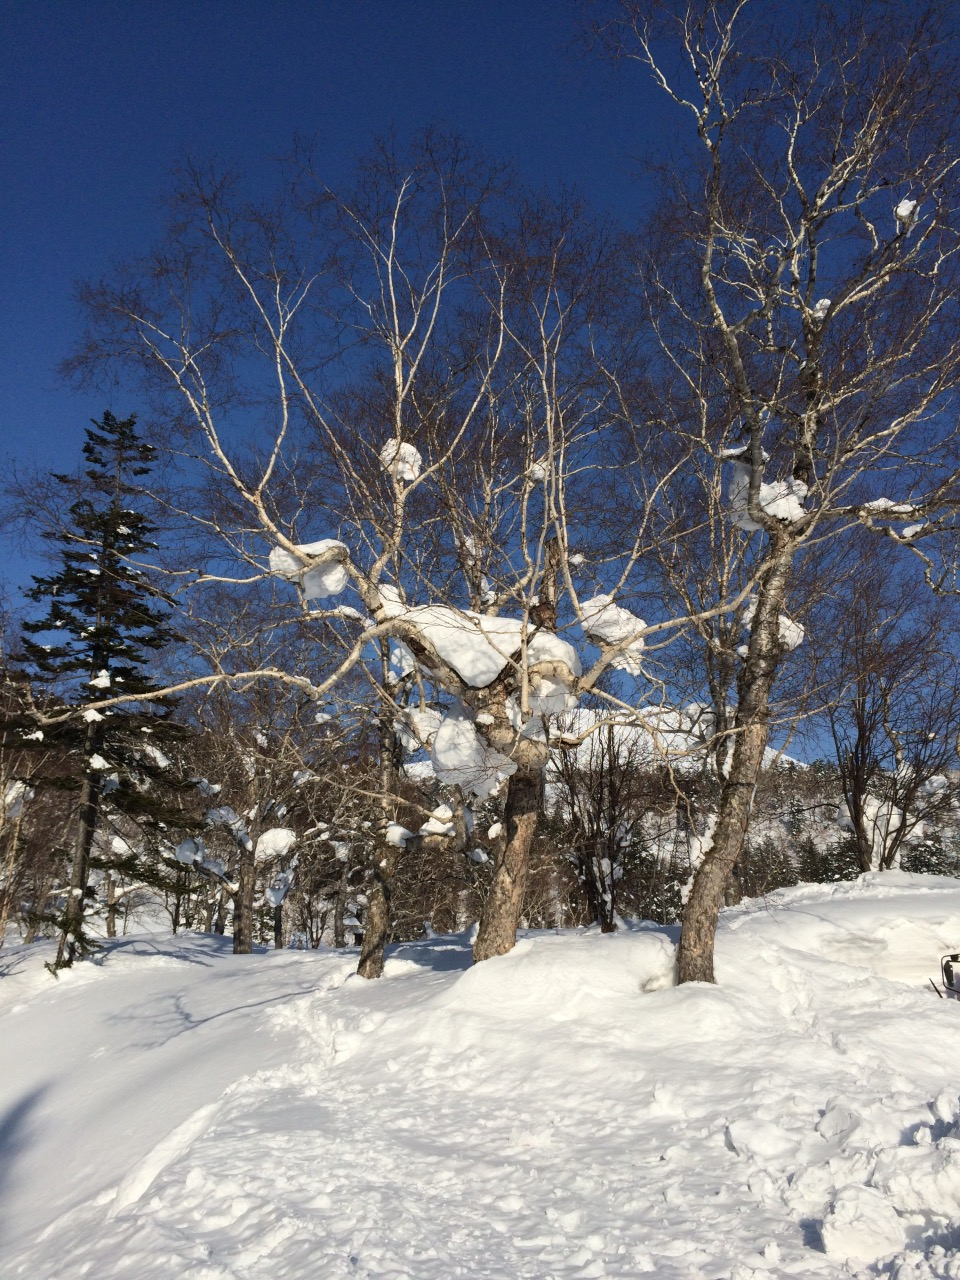 Trees After Heavy Snow Fall